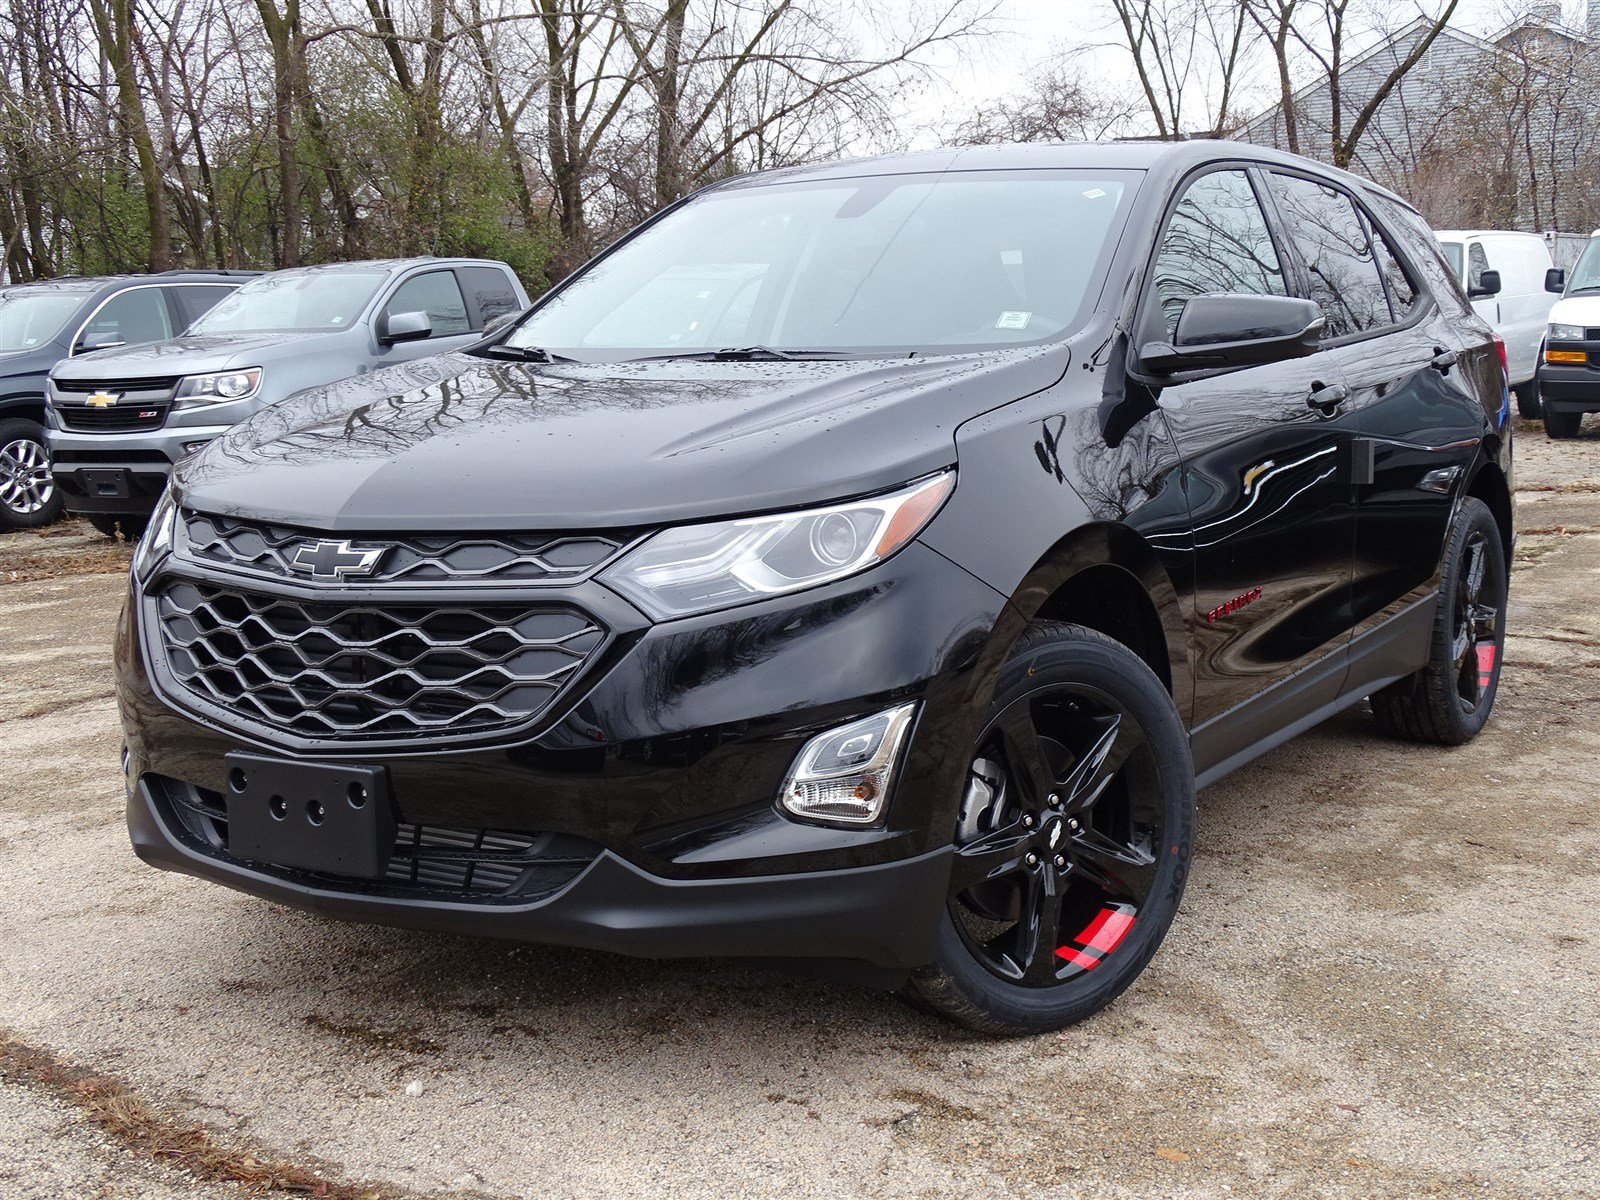 New 2019 Chevrolet Equinox LT 4DR SUV in Glen Ellyn